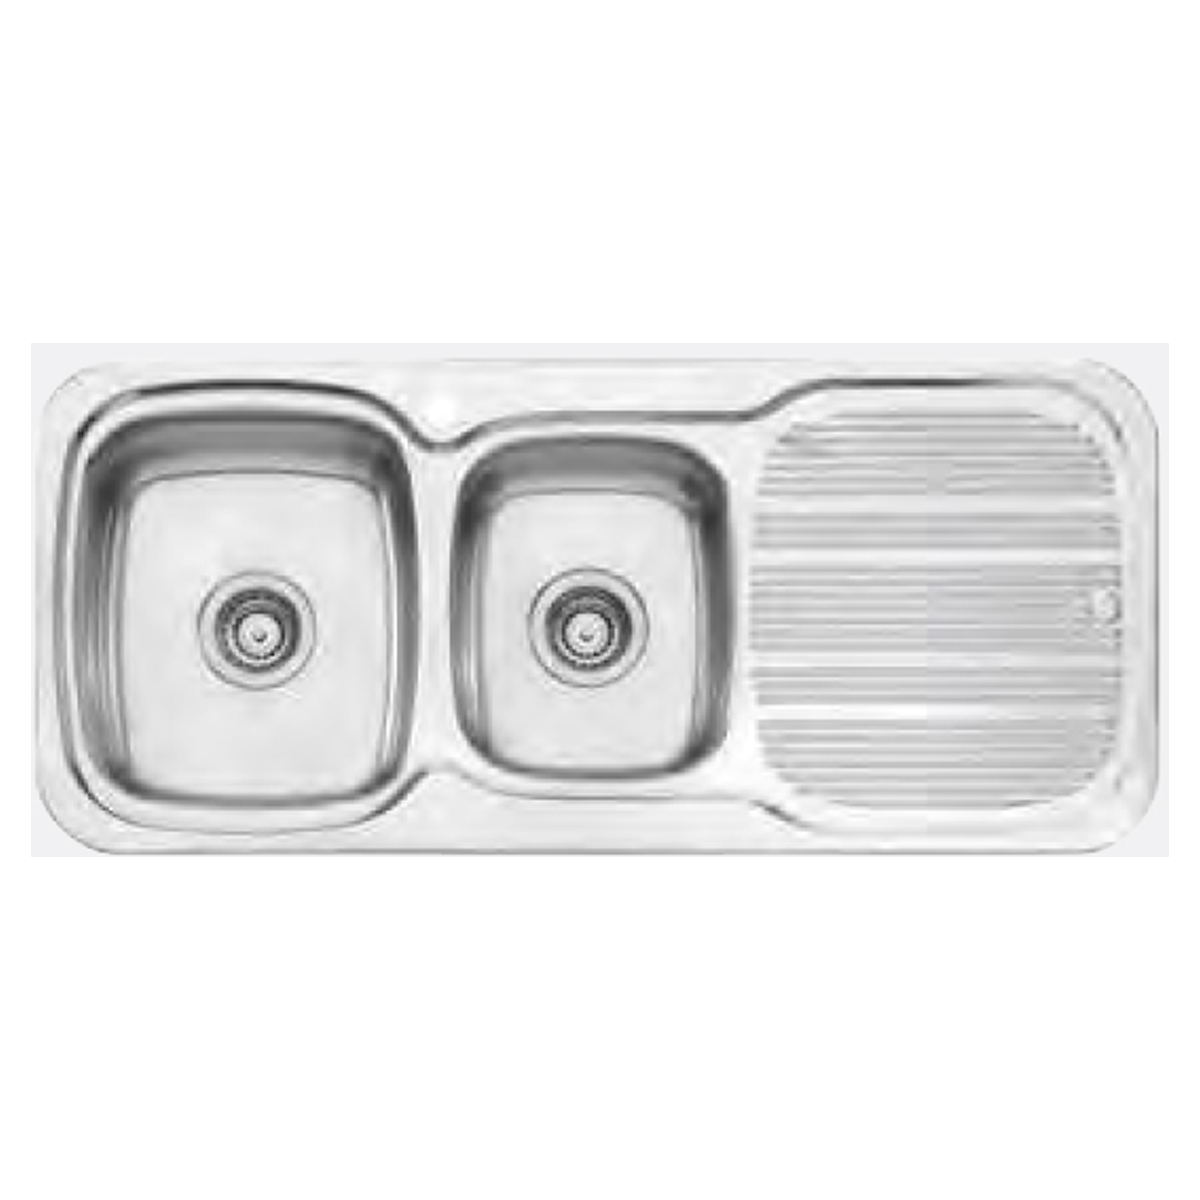 Oliveri PL811 Stainless Steel 1 & 3/4 Bowl Inset Sink with Drainer